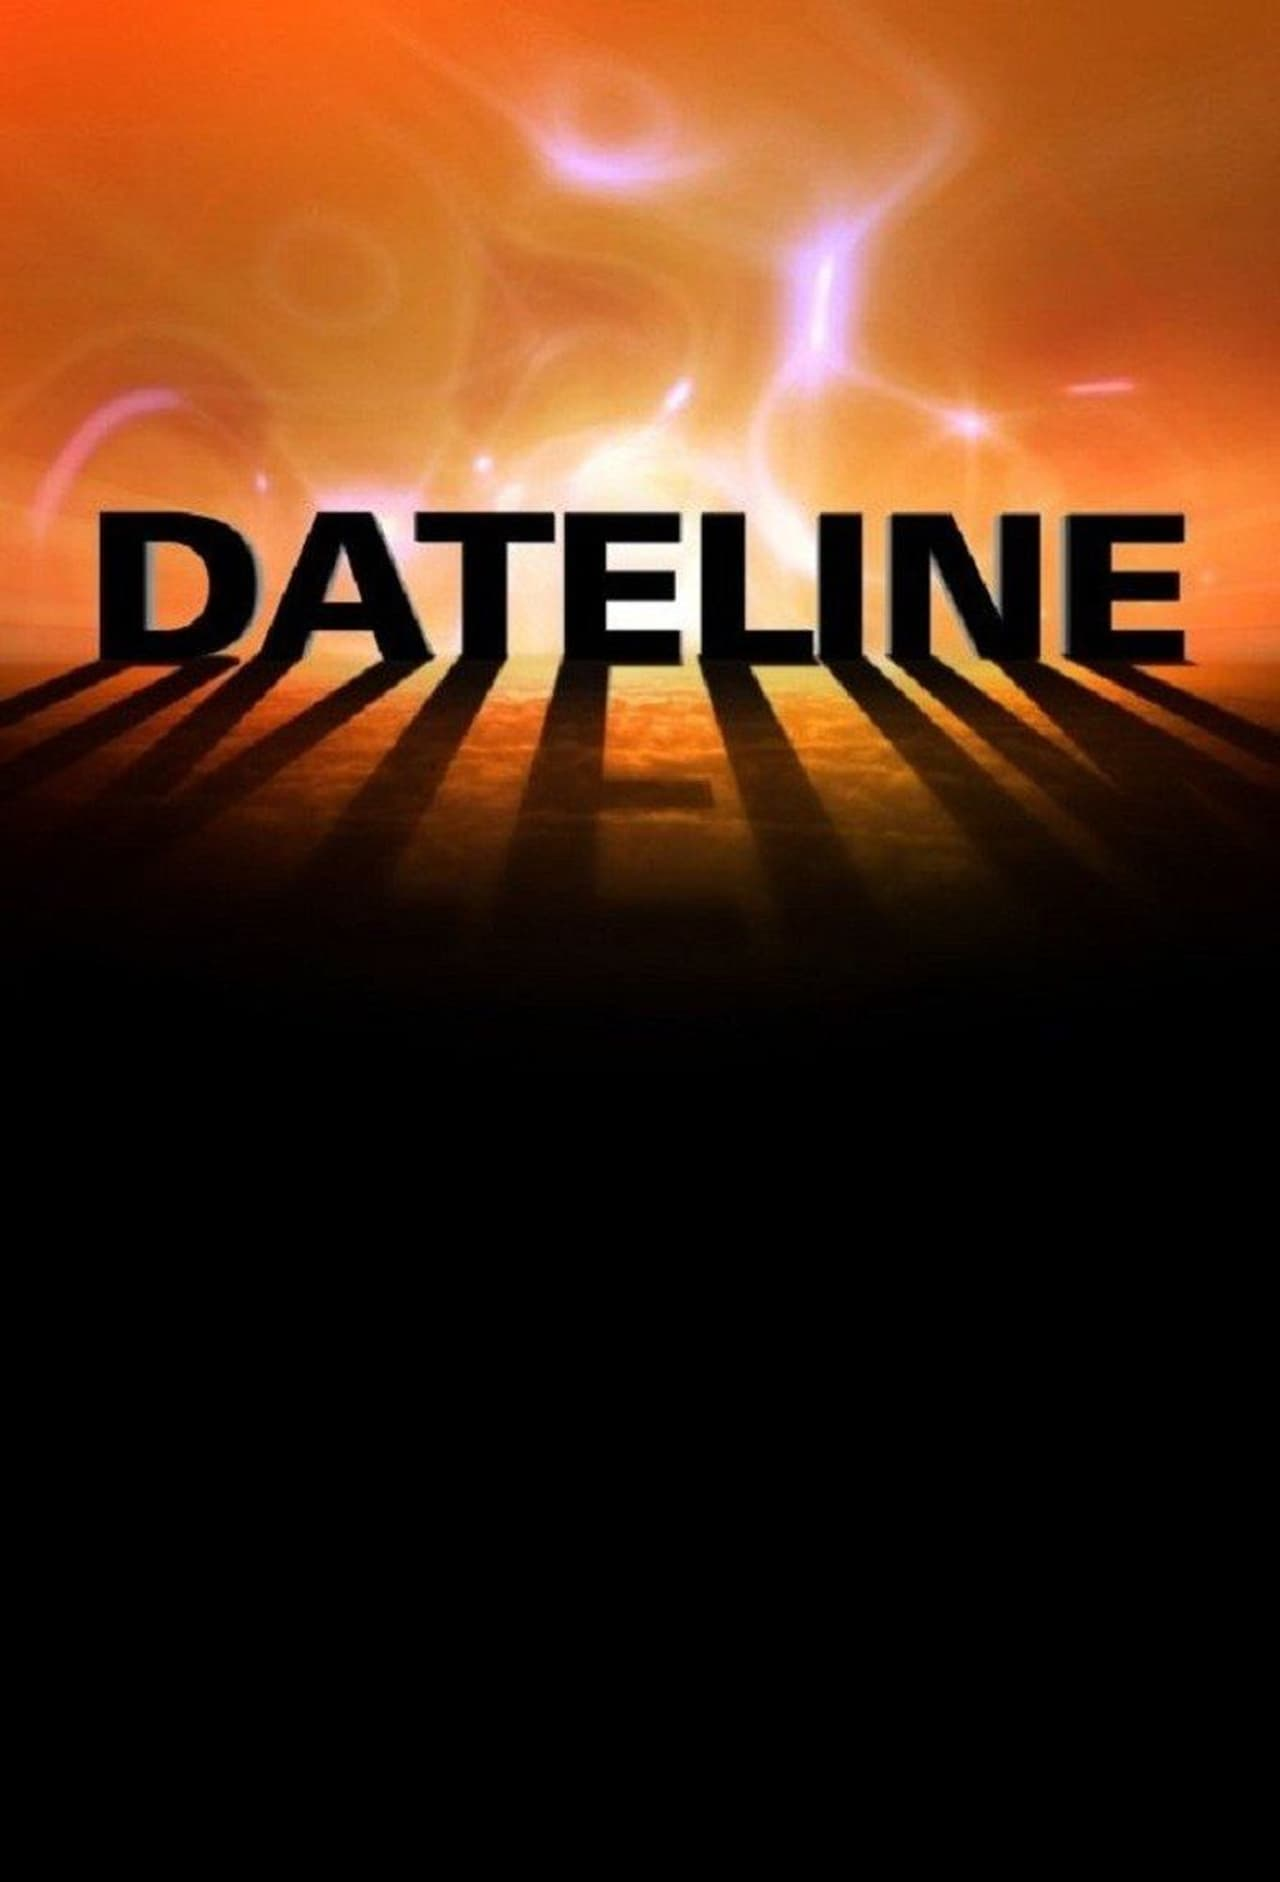 Putlocker Dateline Nbc Season 22 (2013)